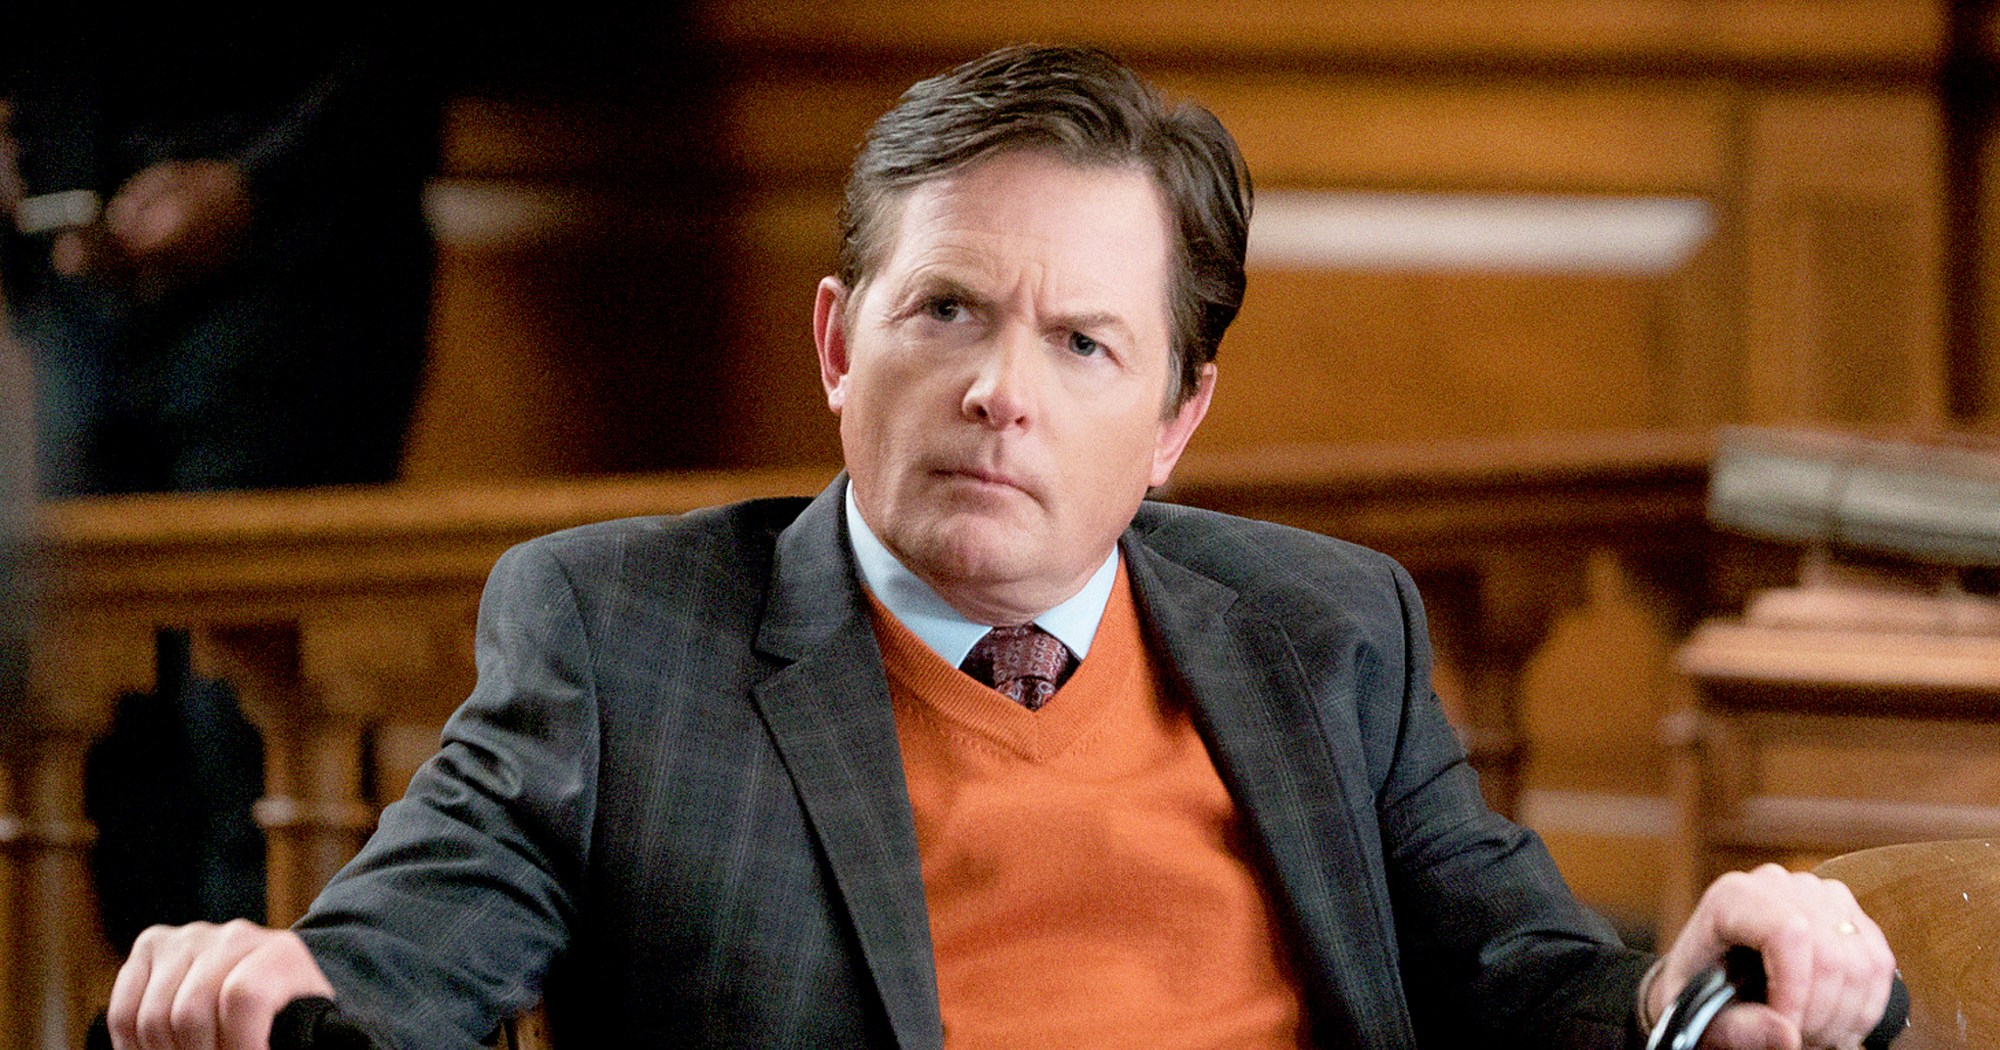 Michael J. Fox Explains His 'Good Wife' Character: 'I Wanted to Prove Disabled People Can Be A‑‑holes Too'